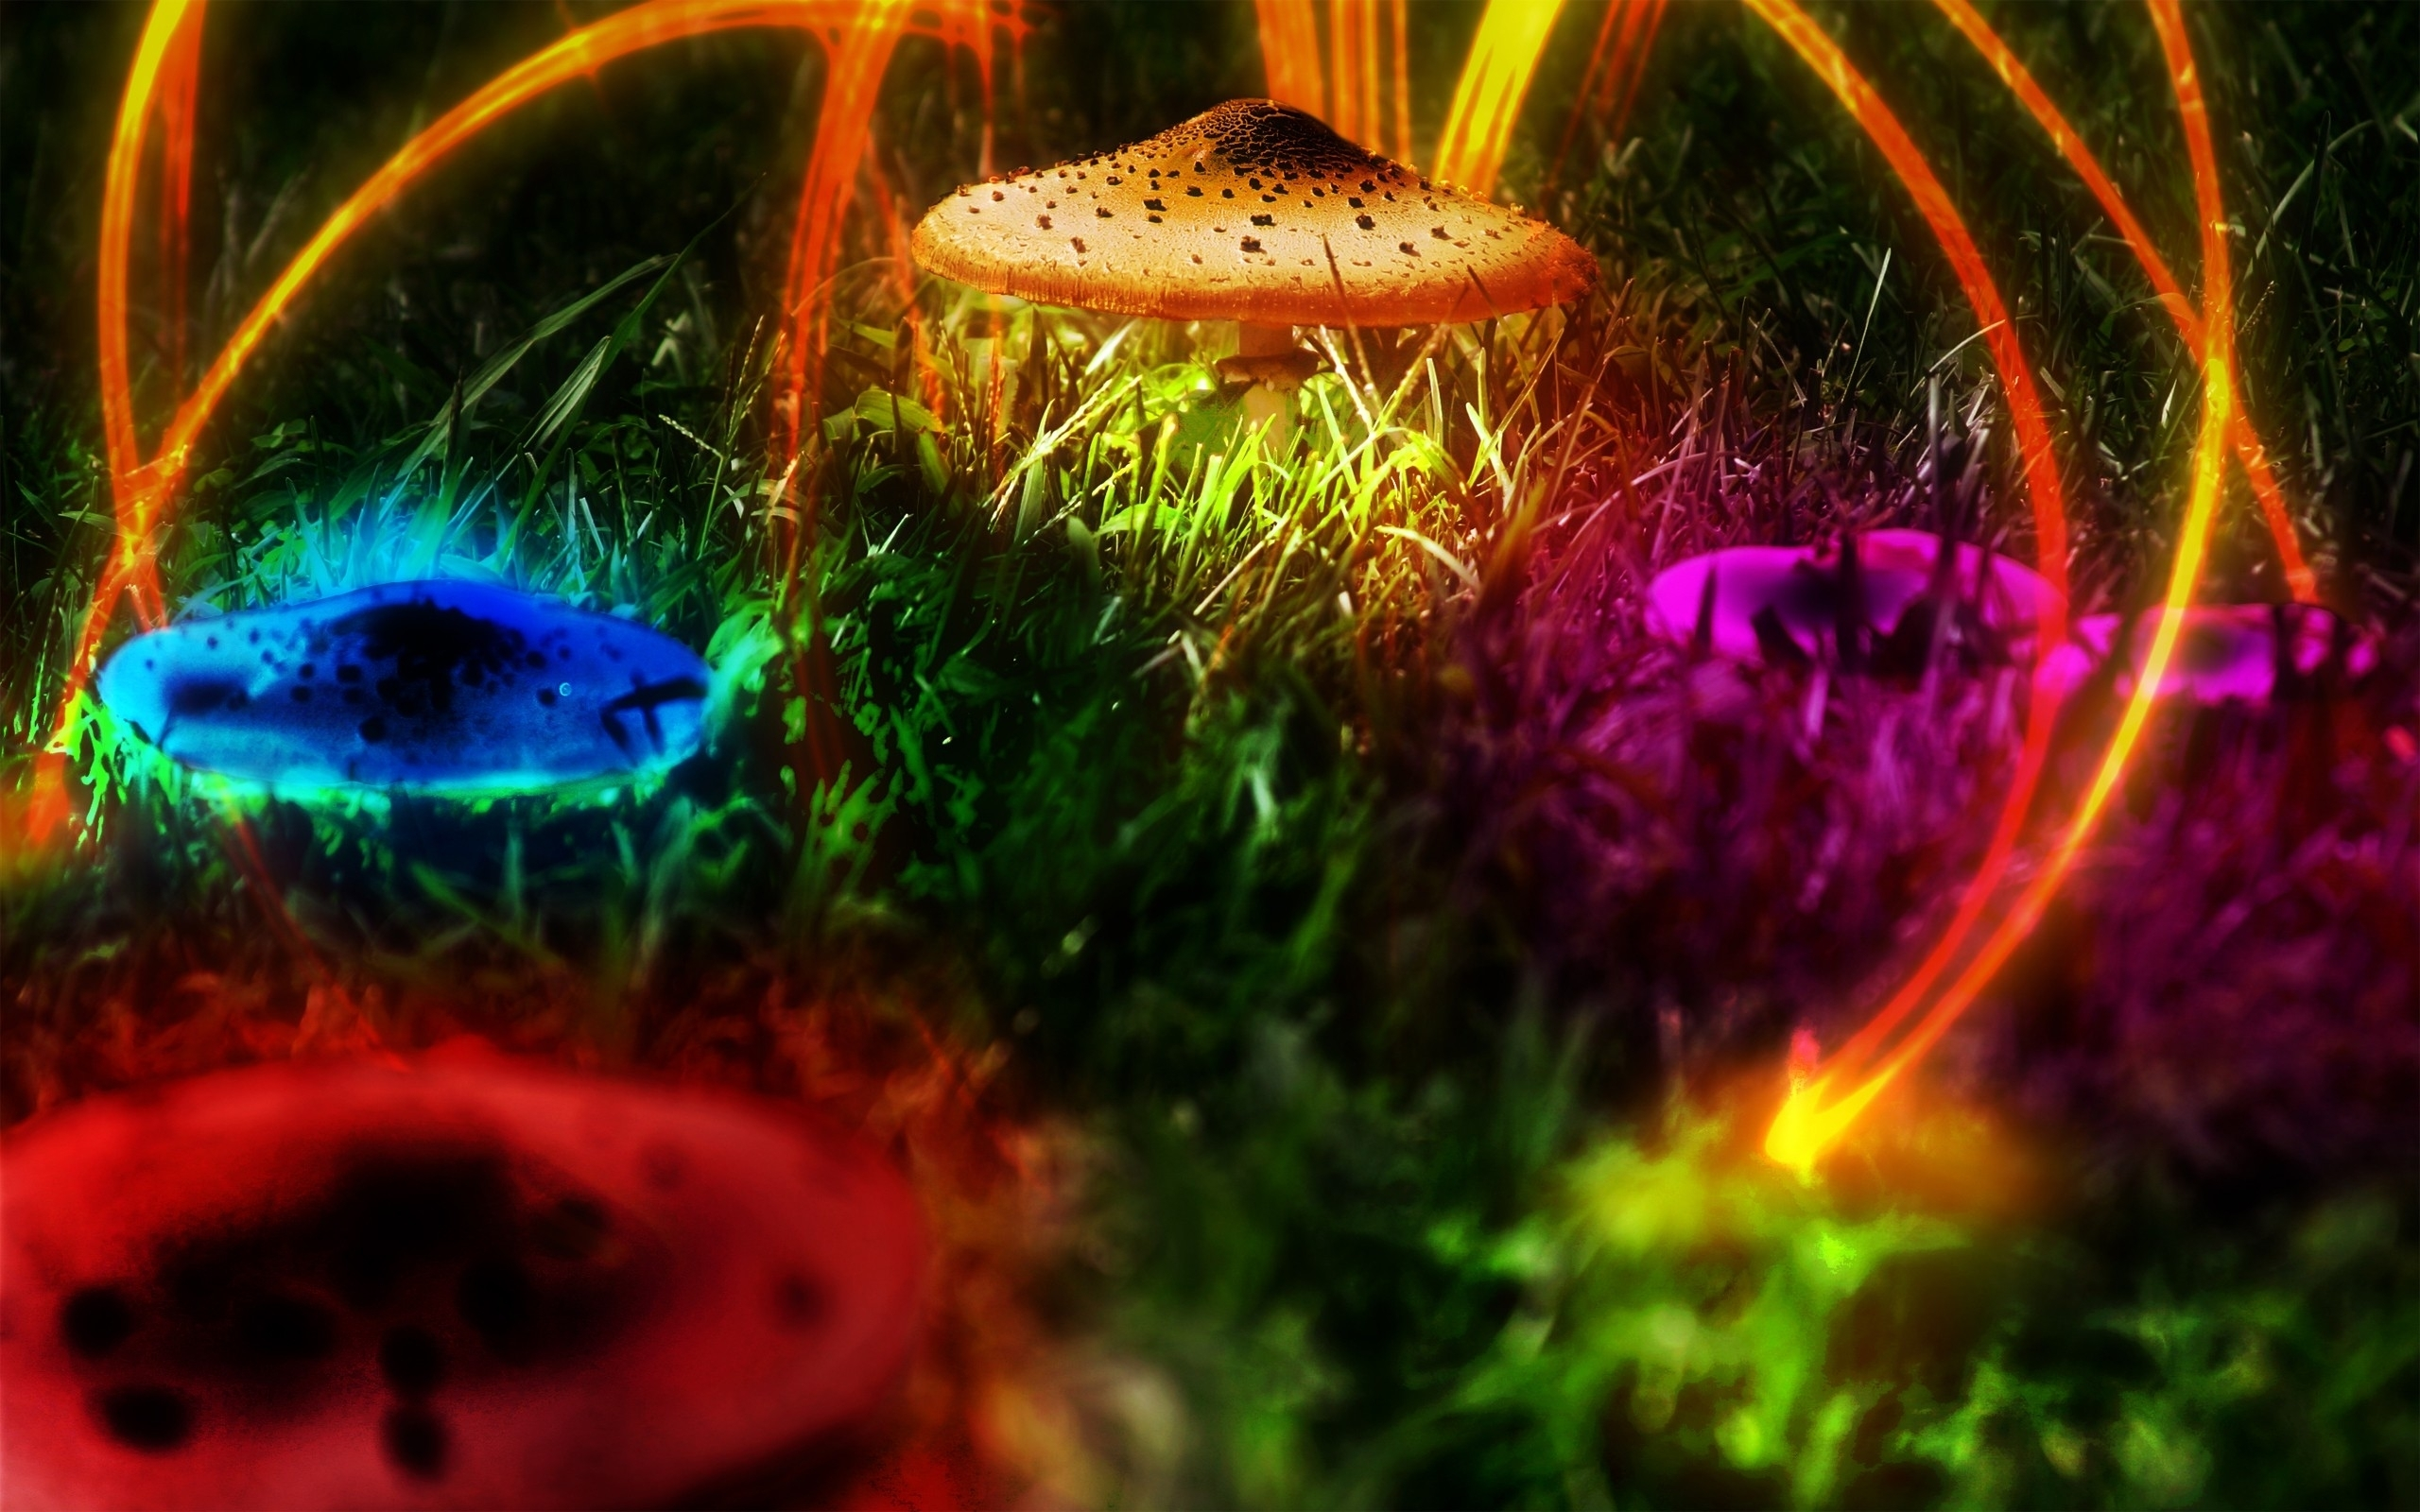 trippy mushroom iphone wallpaper